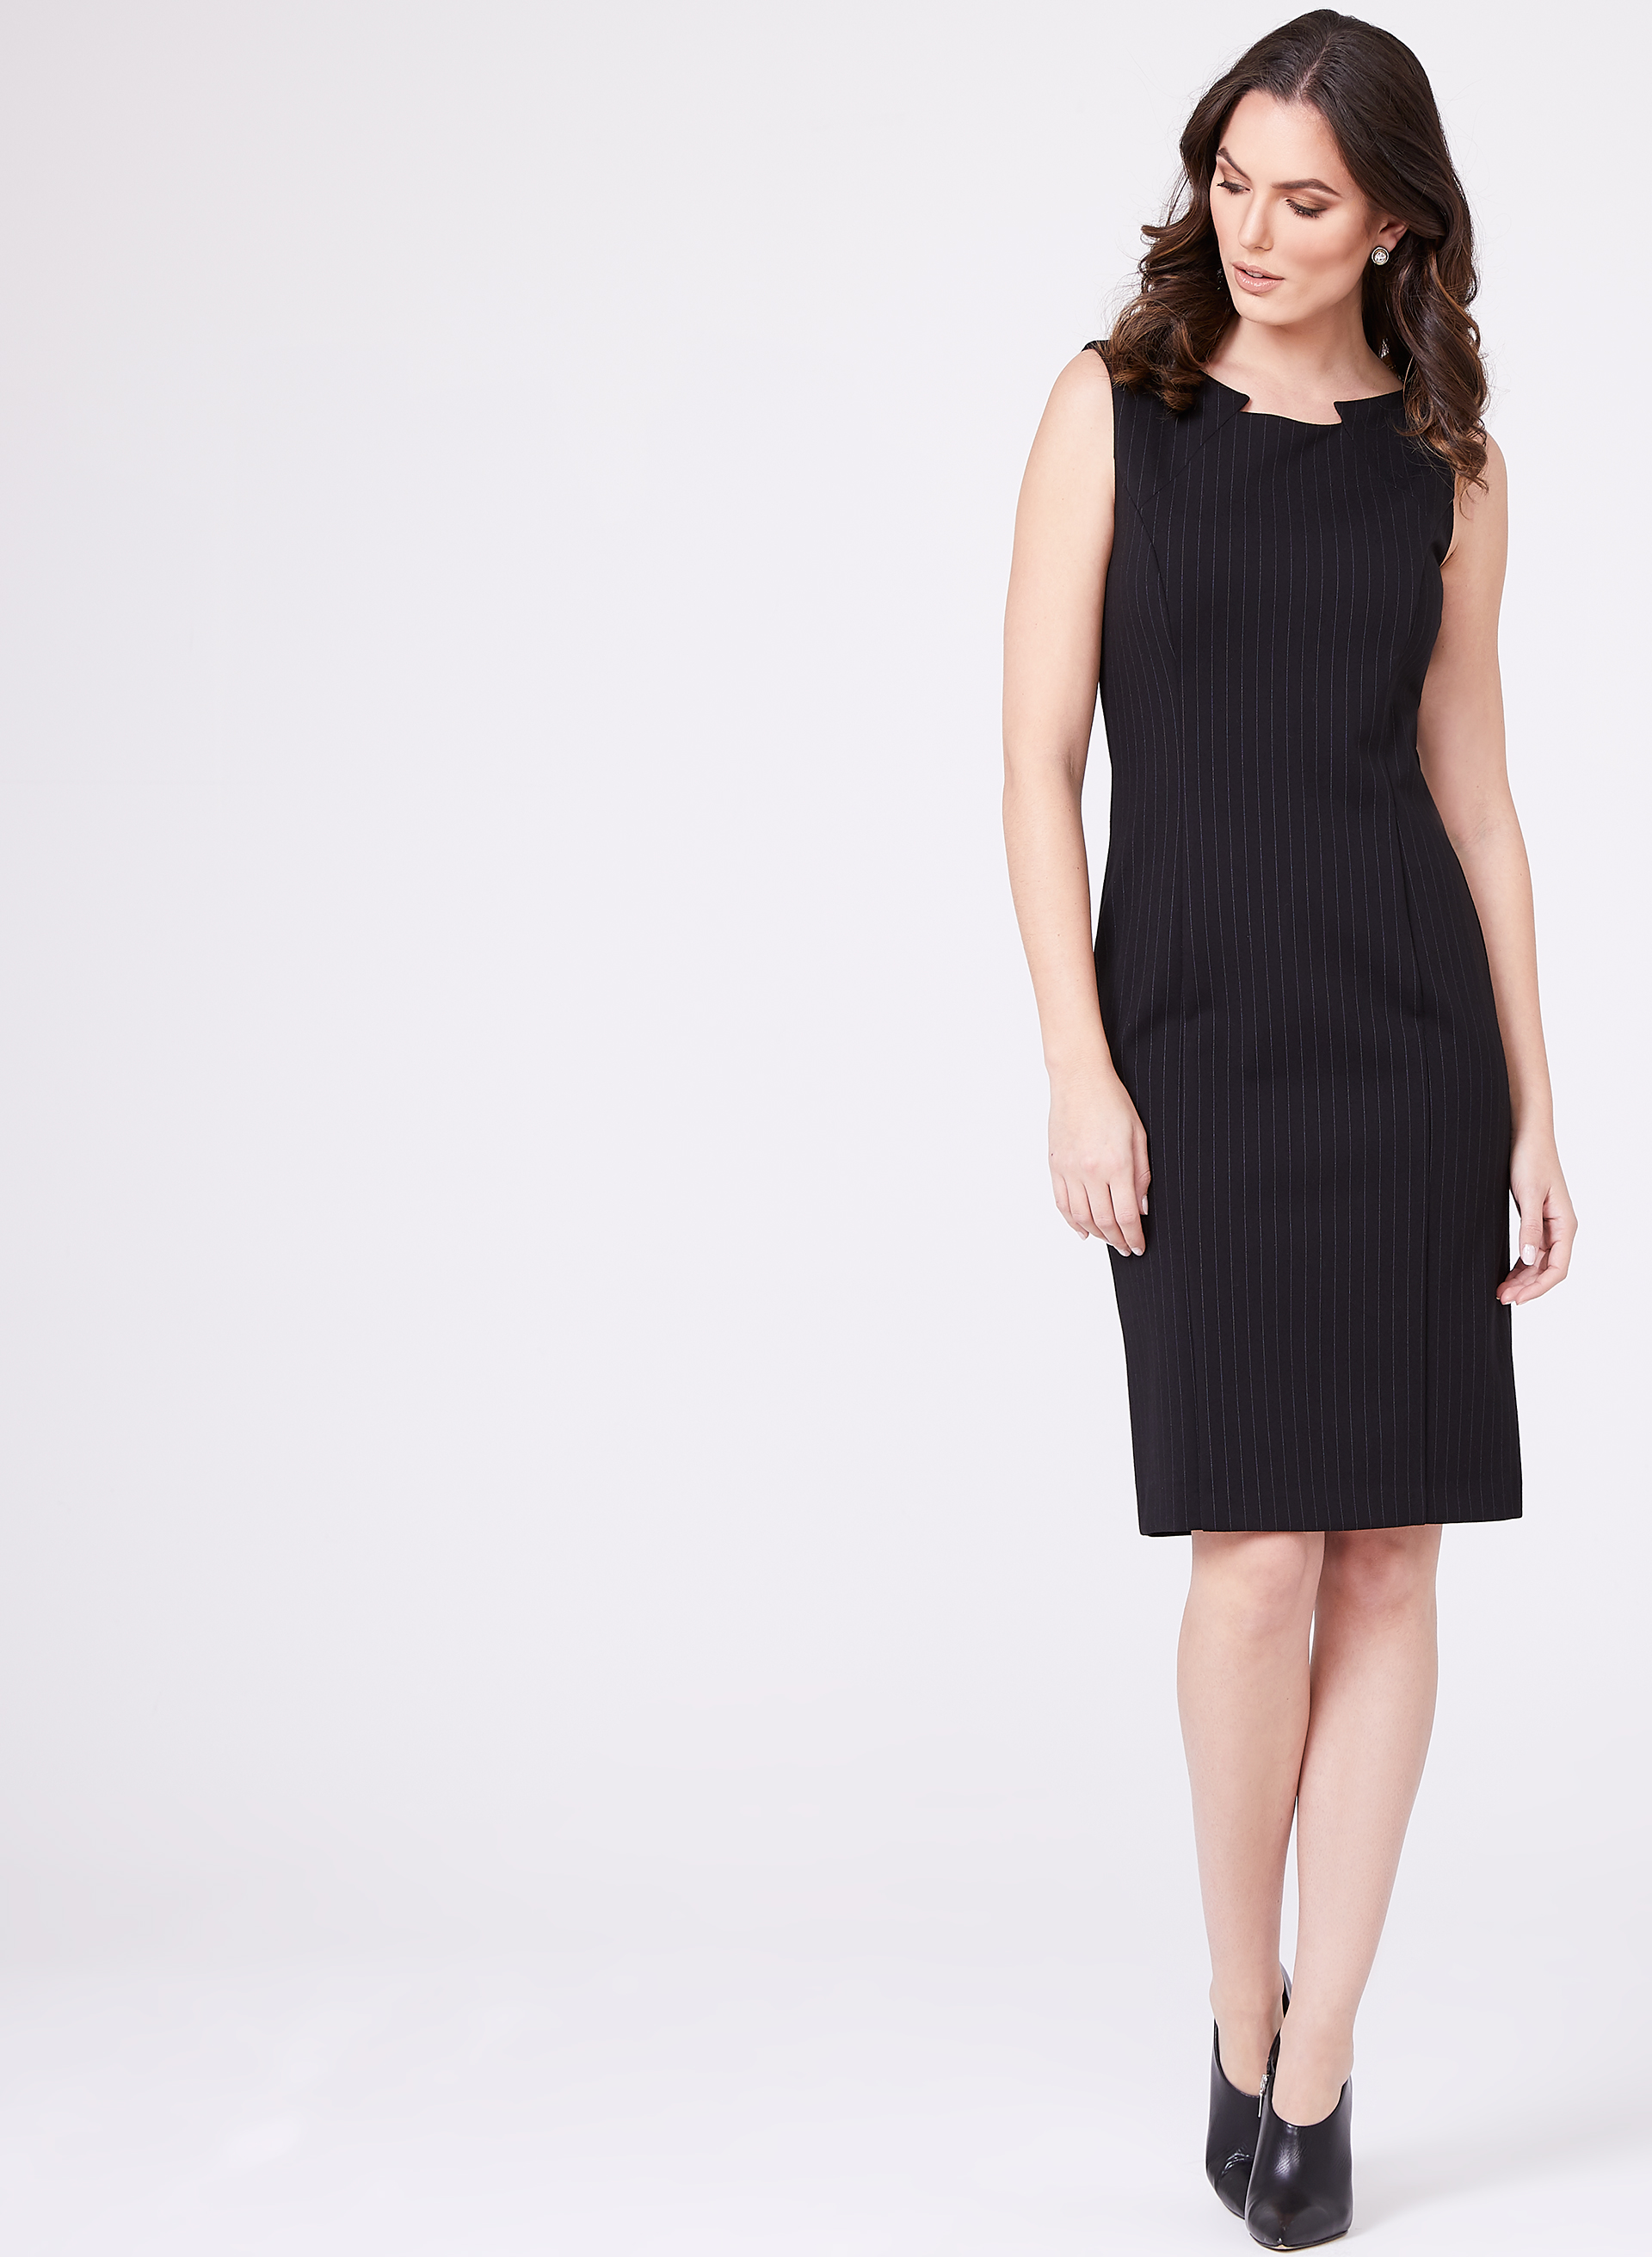 Notch Collar Sheath Dress, Black, hi-res